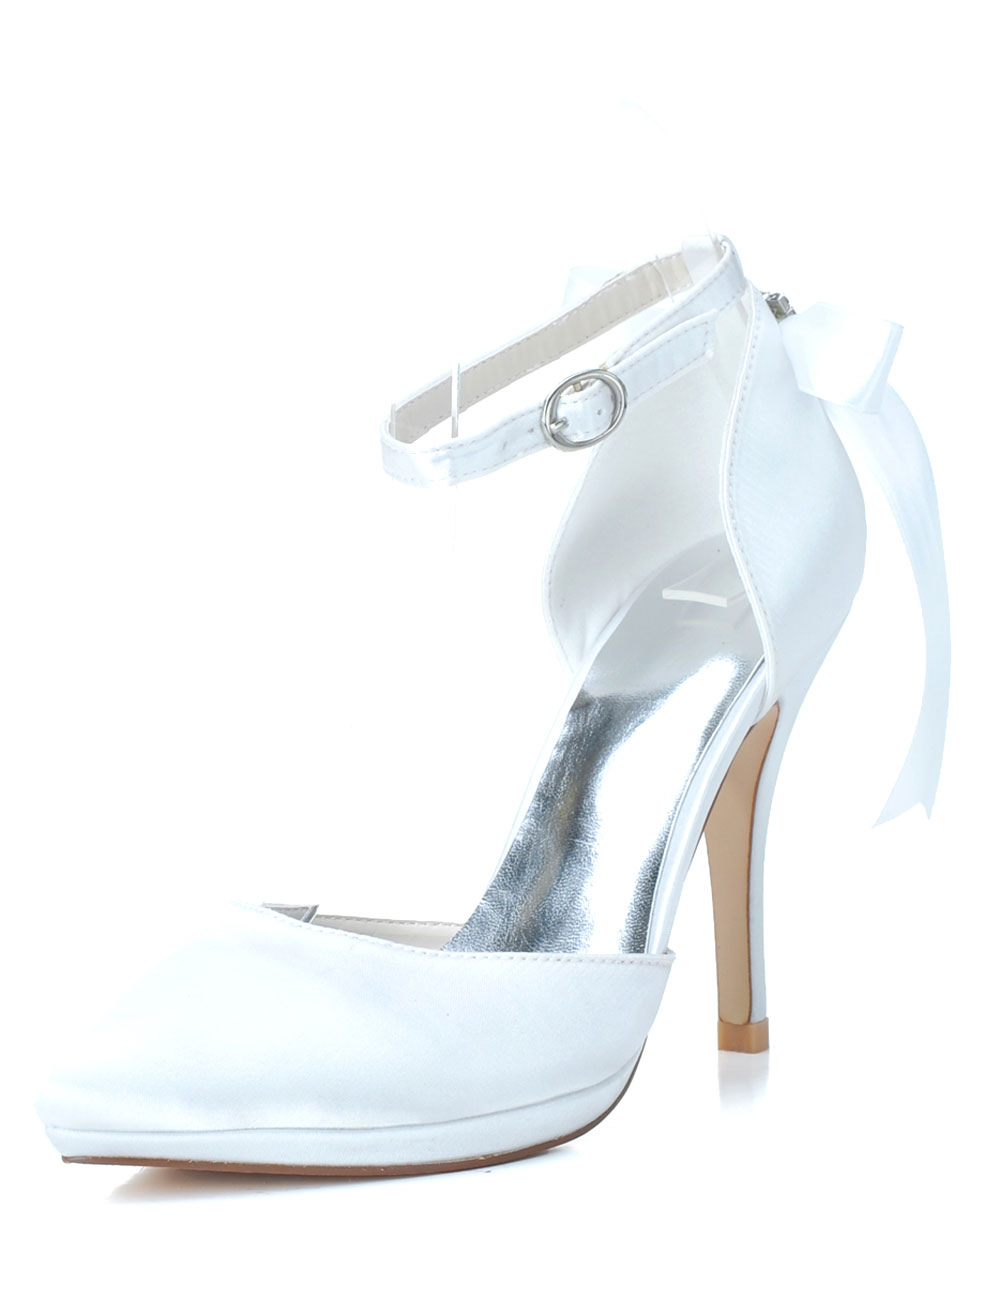 Satin Pointed Toe Ankle Strap Bows Evening and Bridal Platforms